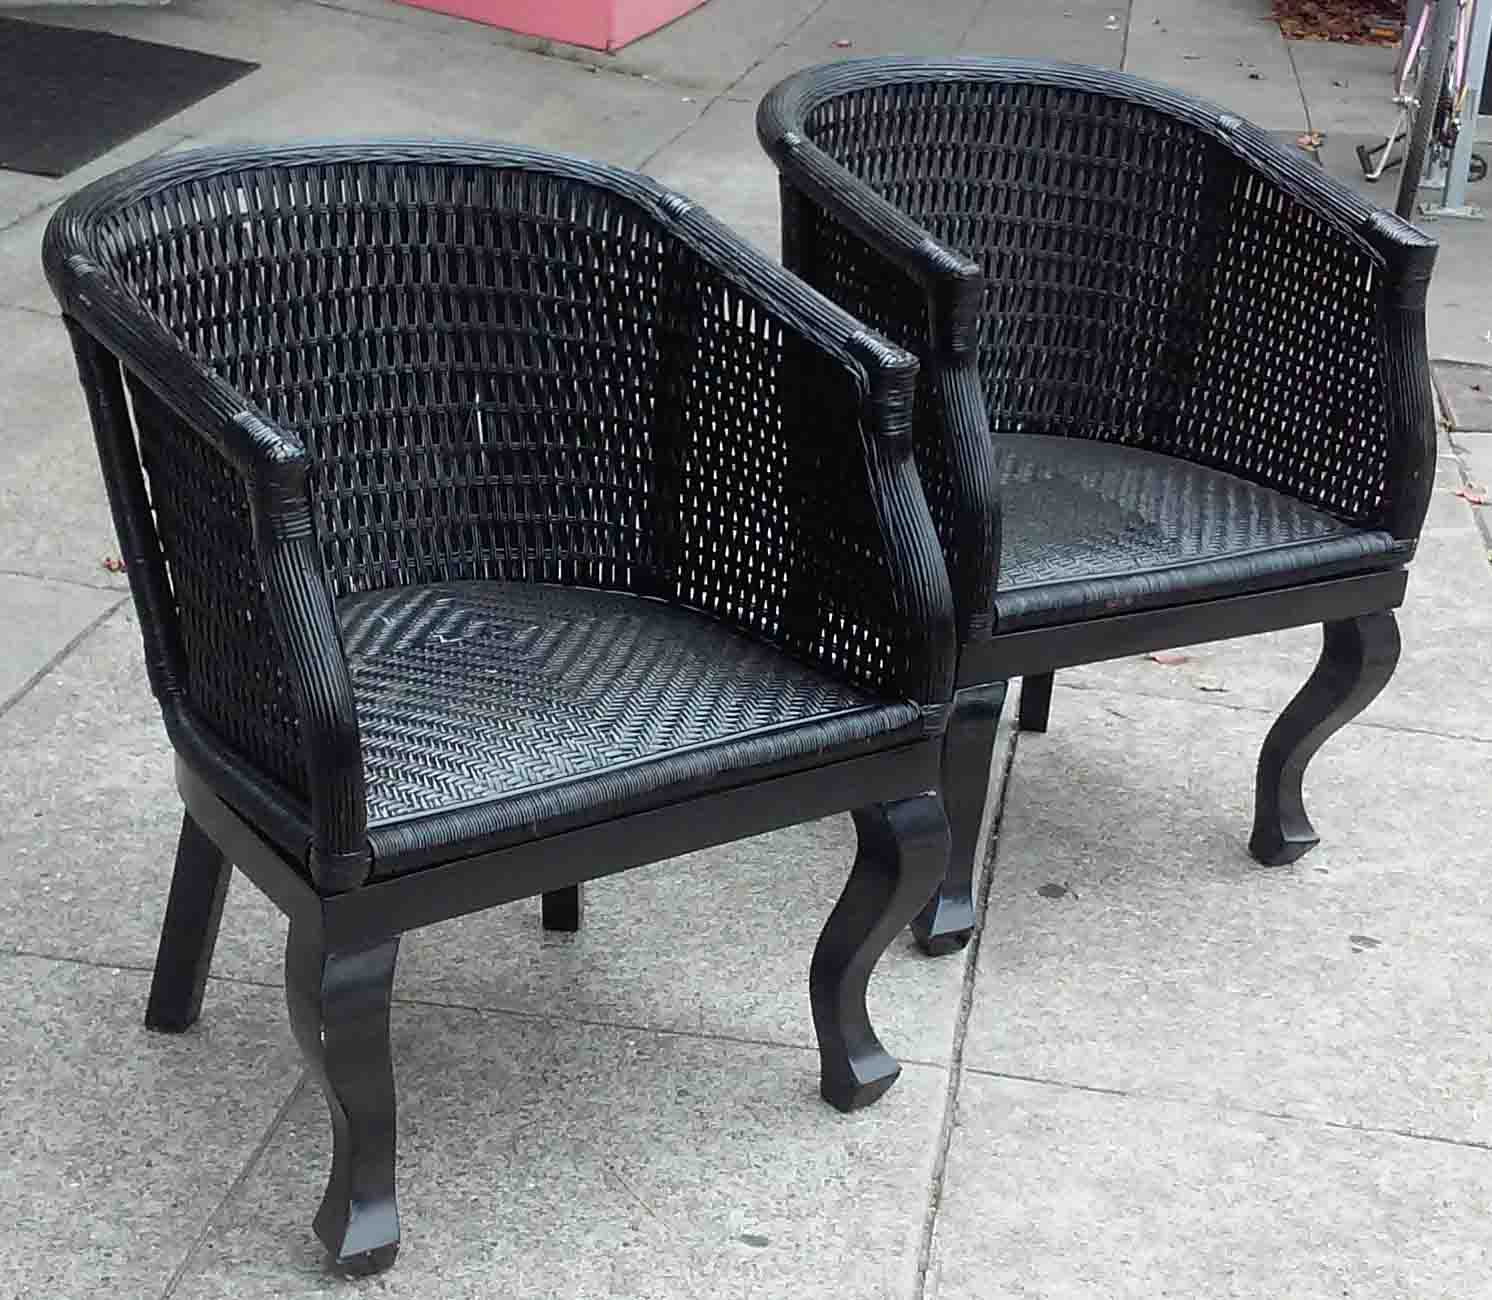 uhuru furniture collectibles sold black wicker patio chairs 35 ea